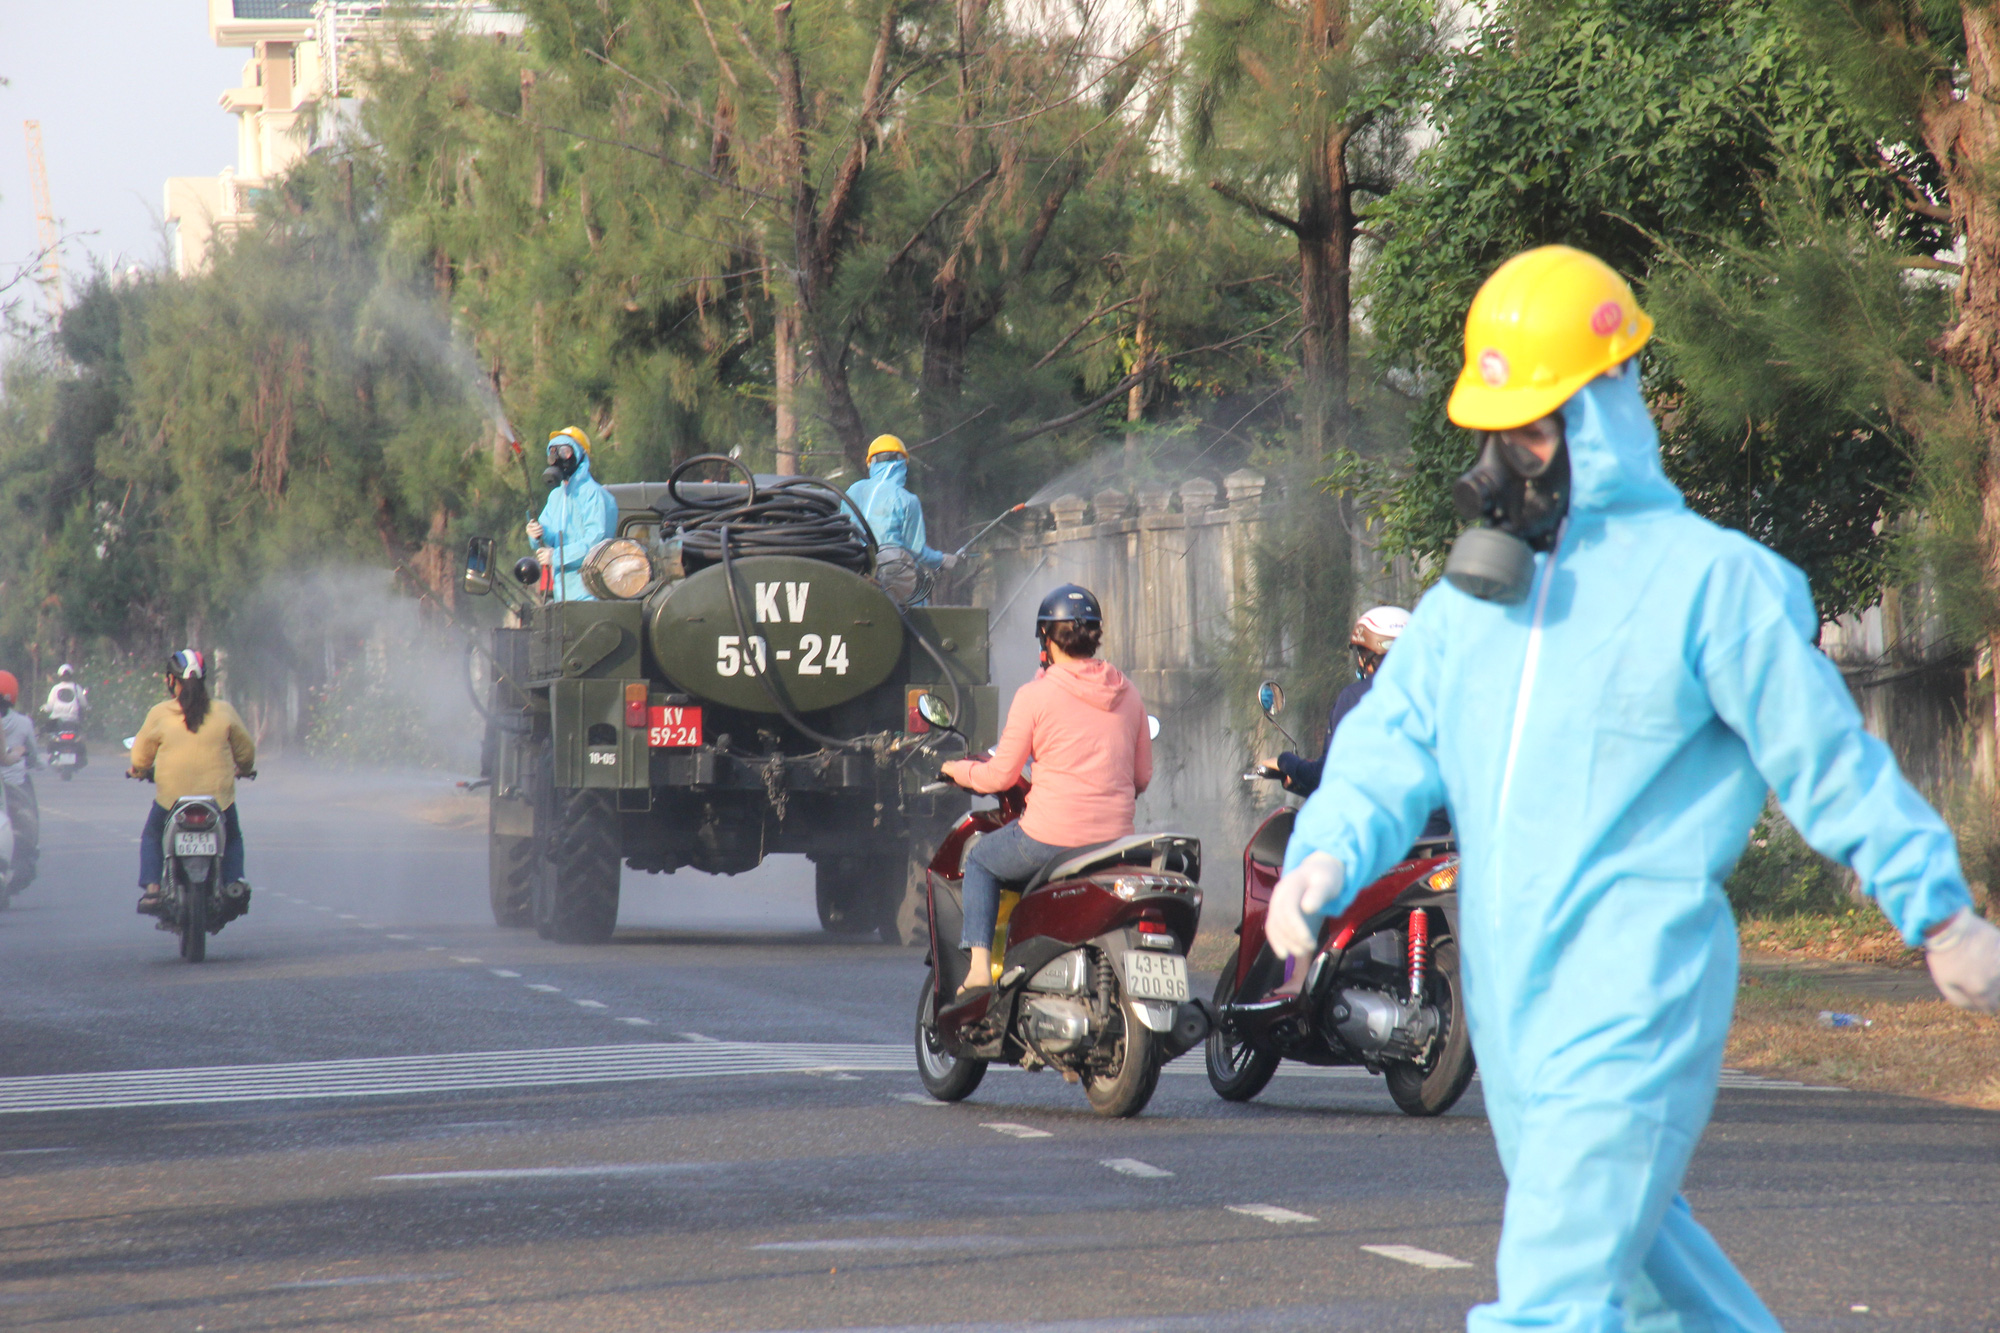 8,000 subject to COVID-19 testing at Da Nang industrial park following detection of suspected cases